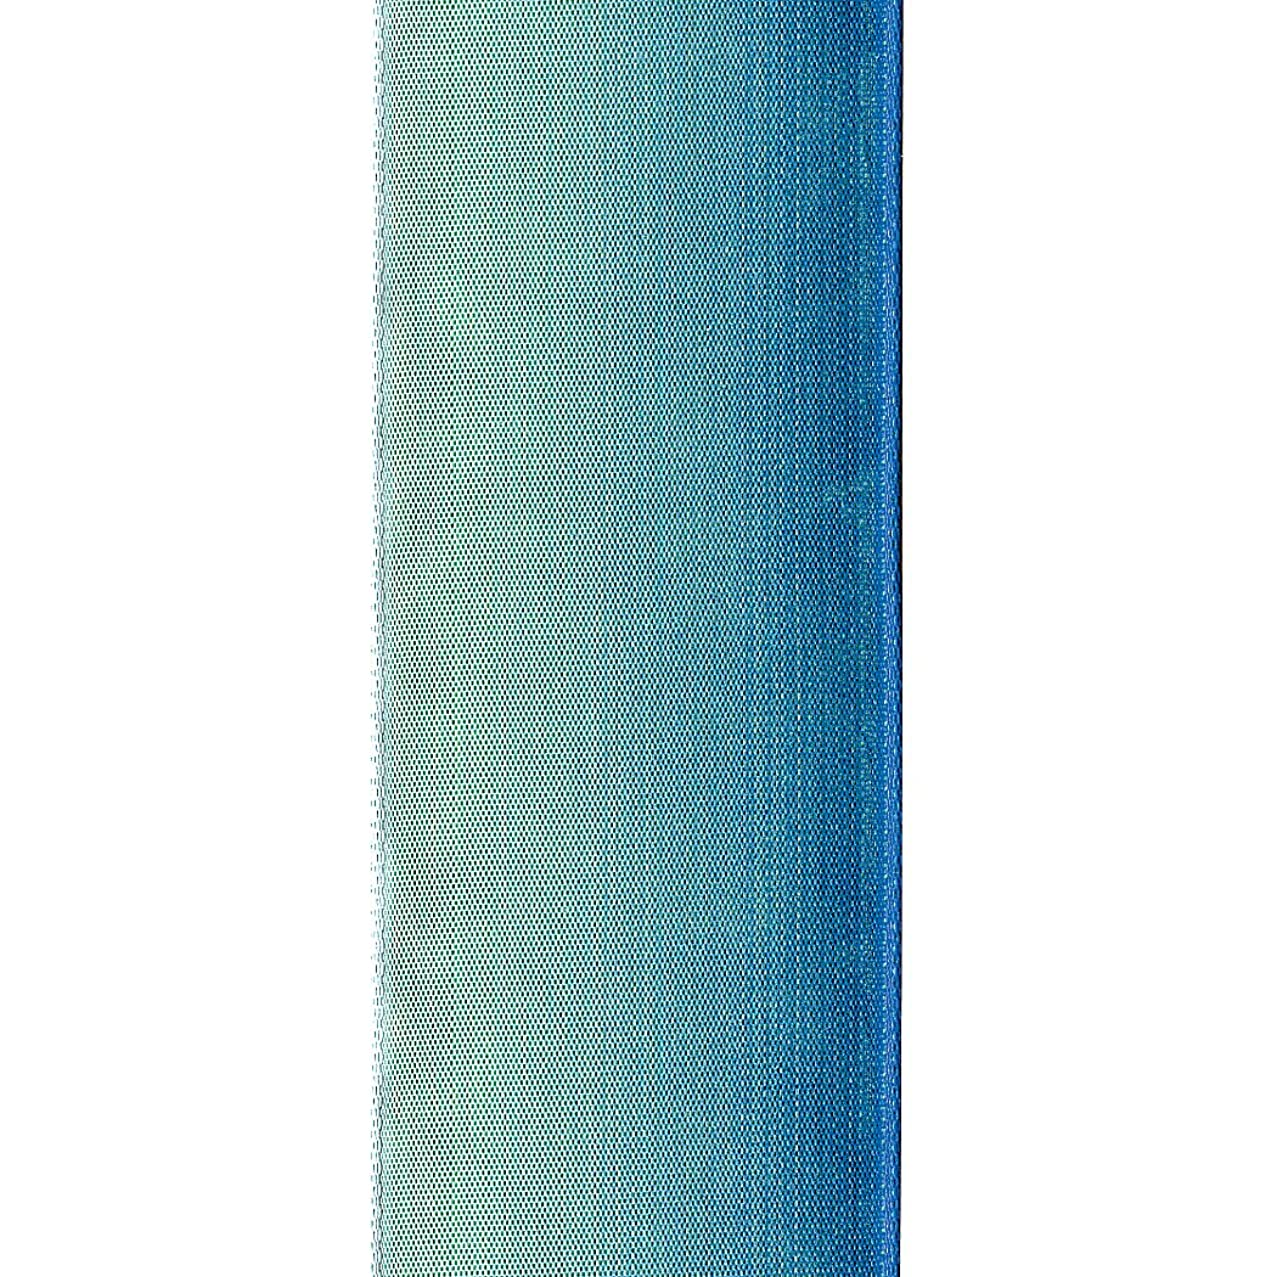 Offray Wired Edge Ombre Craft Ribbon, 1-1/2-Inch Wide by 15-Yard Spool, Teal